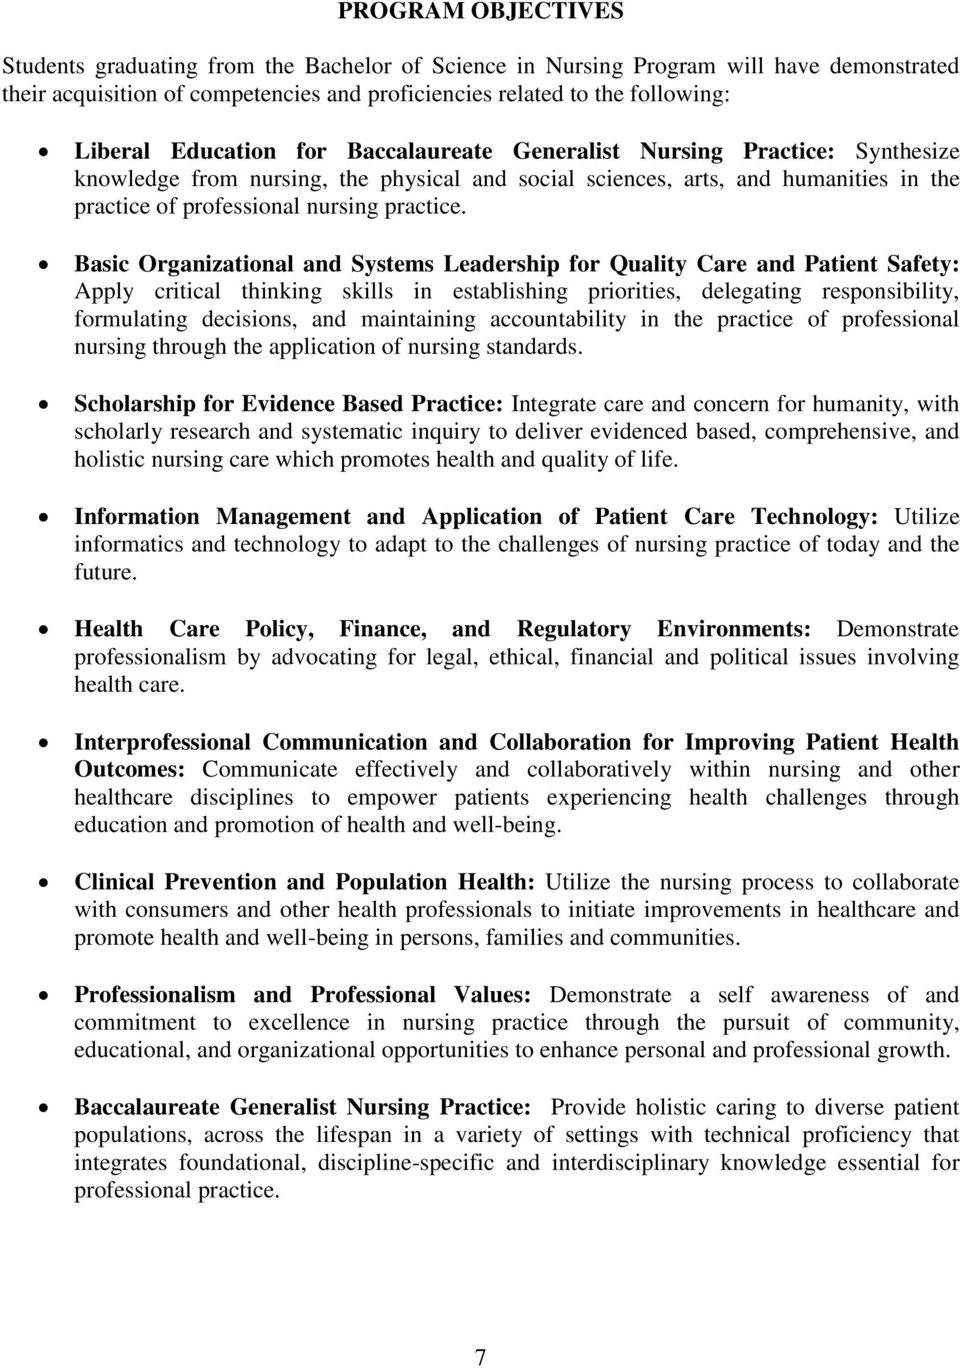 Basic Organizational and Systems Leadership for Quality Care and Patient Safety: Apply critical thinking skills in establishing priorities, delegating responsibility, formulating decisions, and